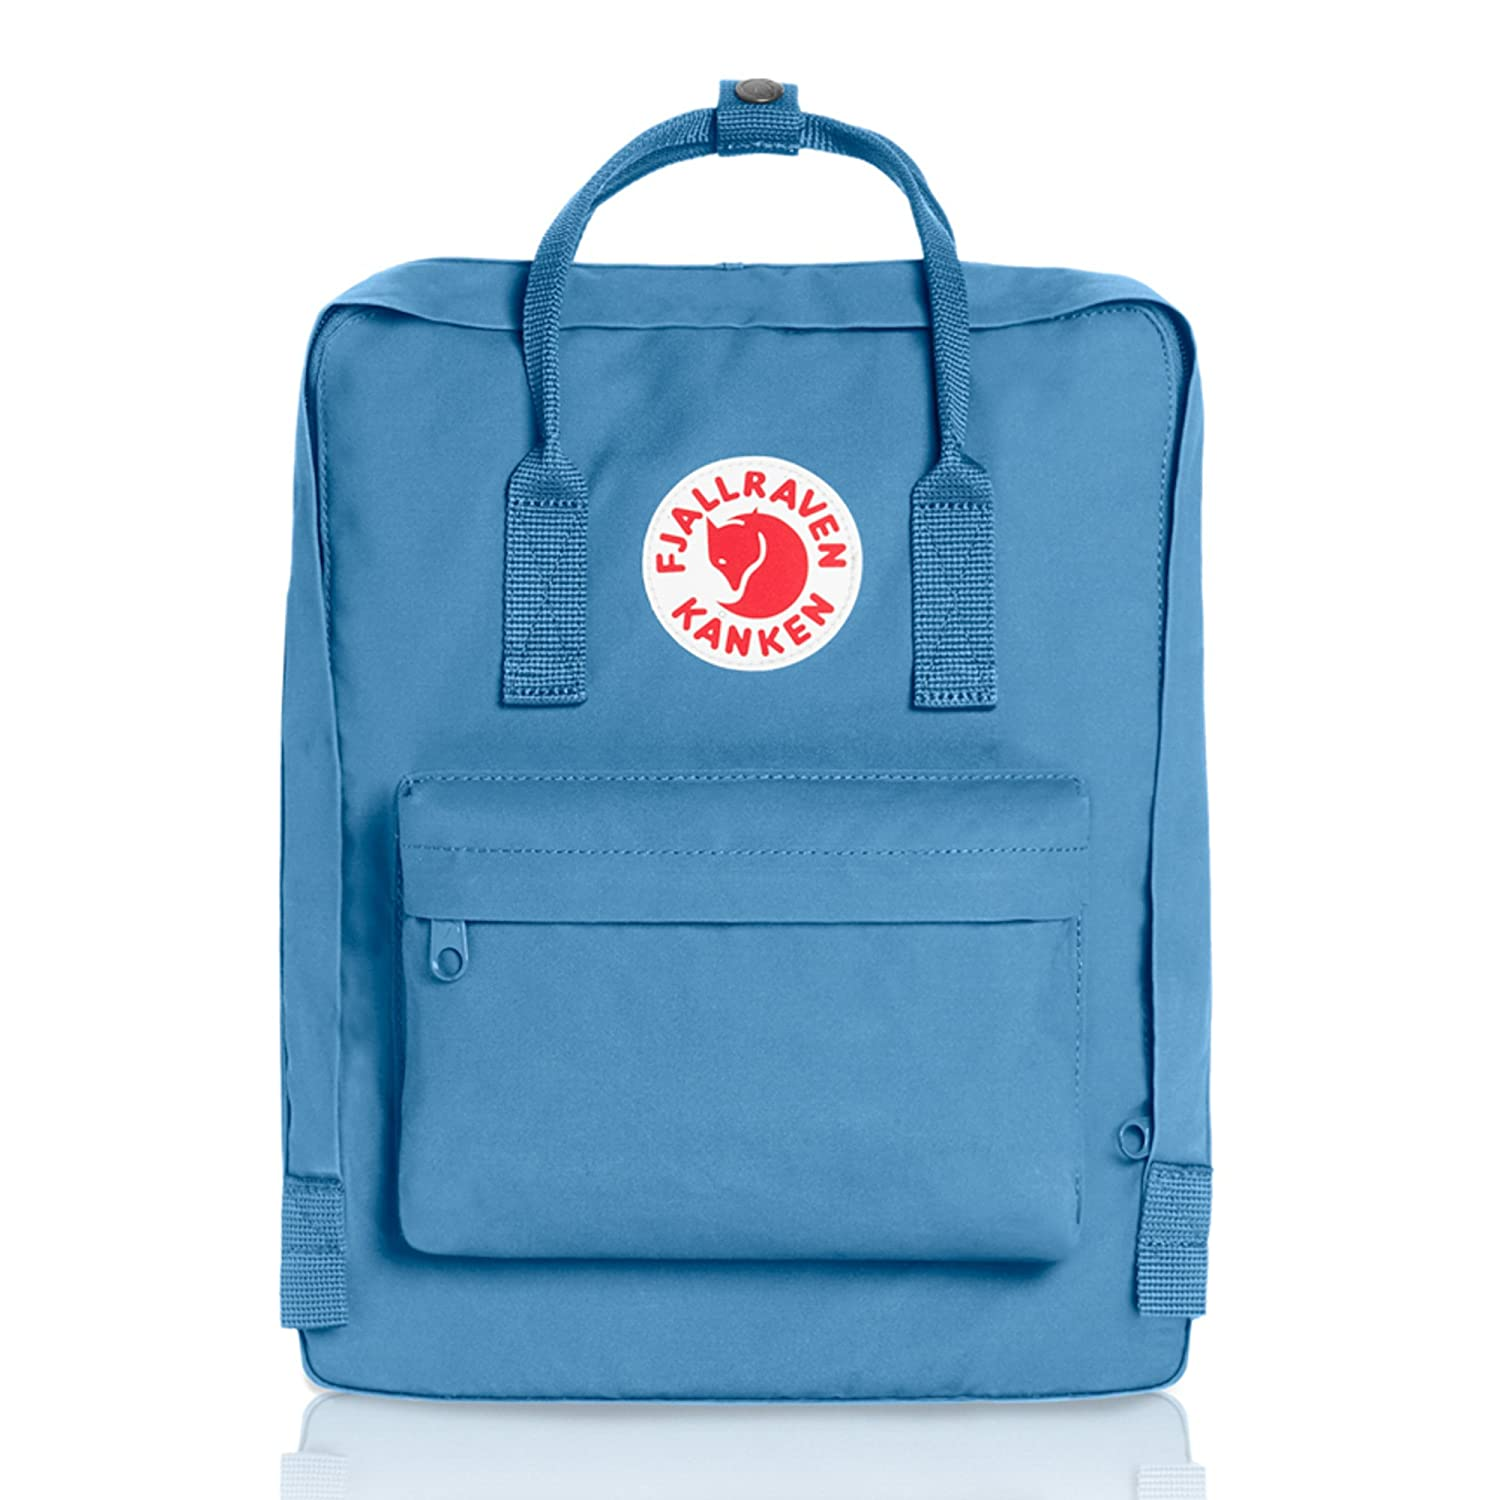 adfd31f19 Fjällräven Waterproof Kanken Unisex Outdoor Hiking Backpack available in  Air Blue -16 L: Amazon.co.uk: Sports & Outdoors